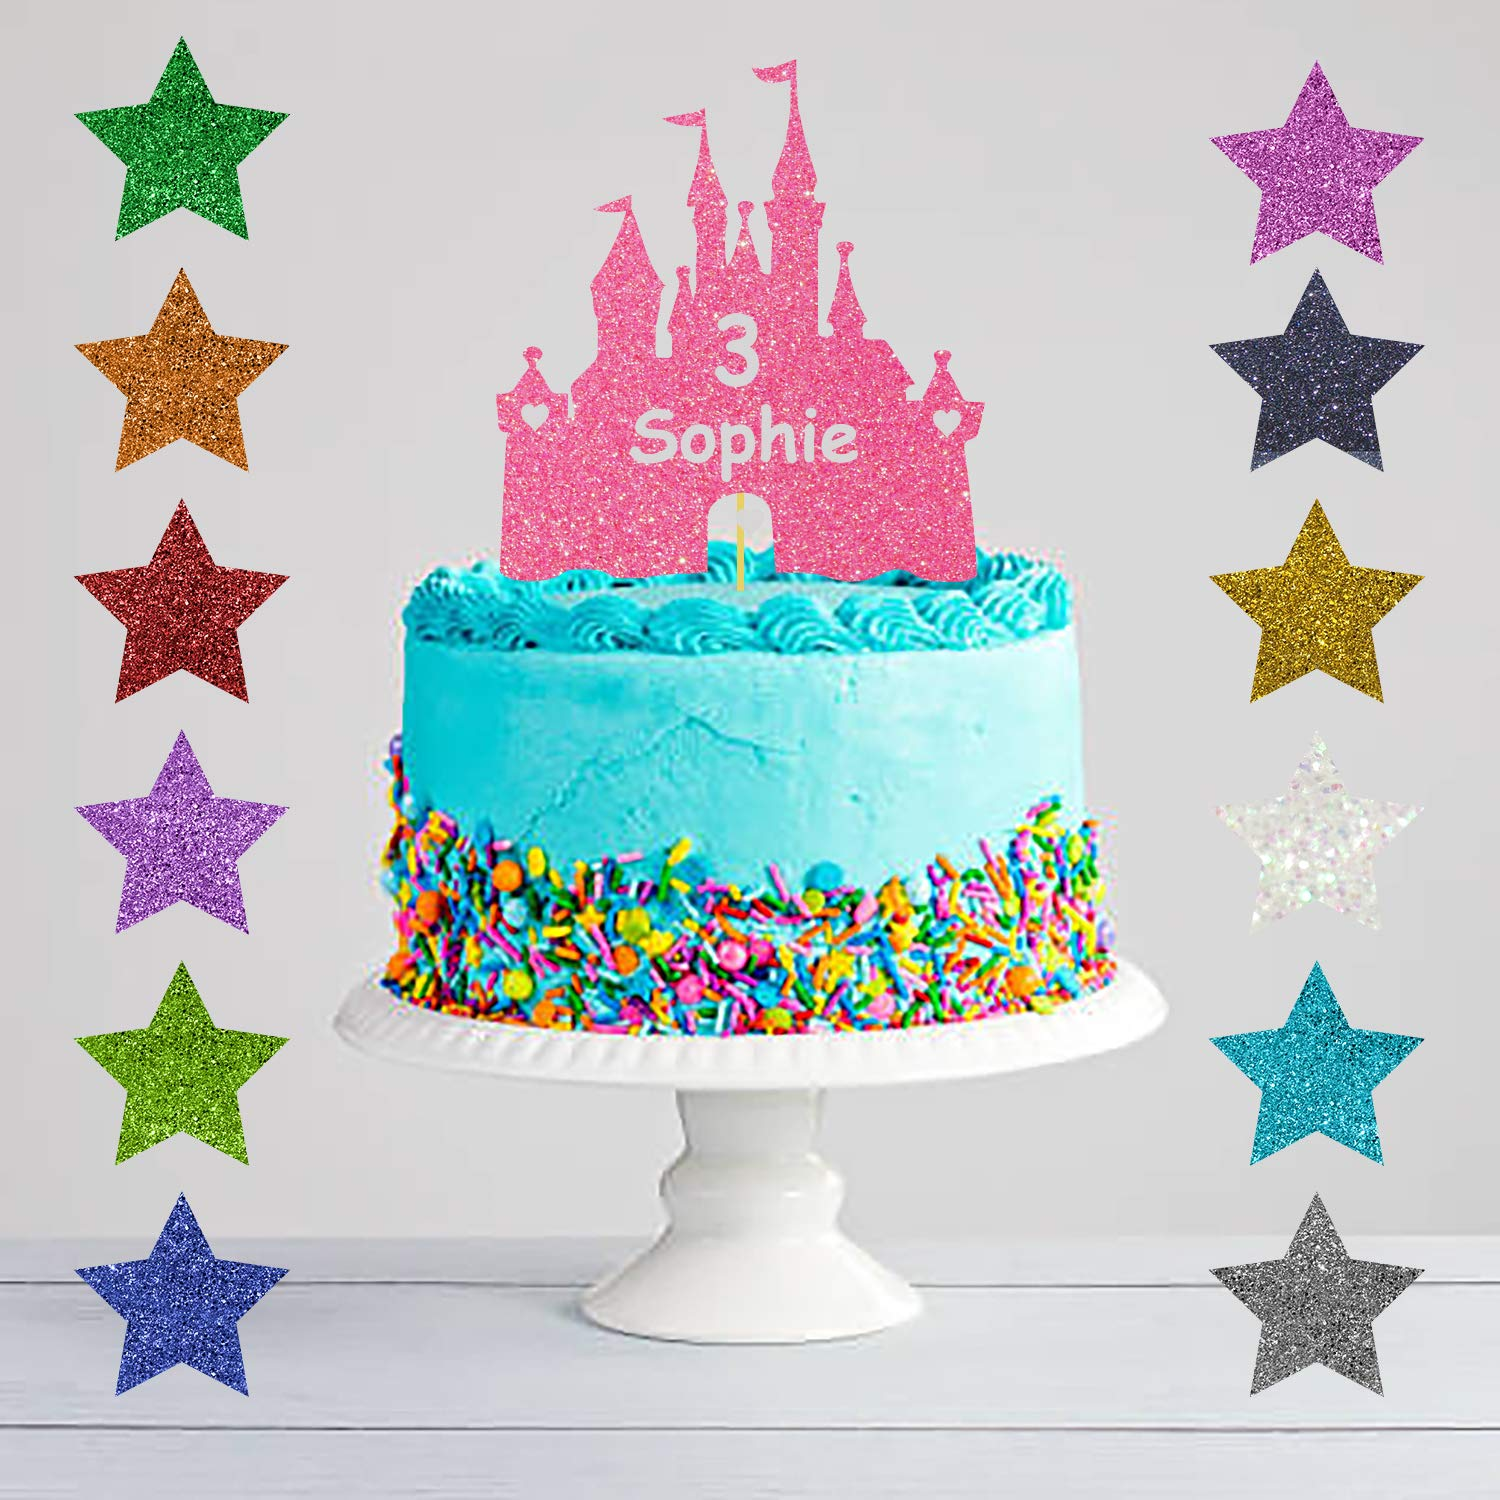 Admirable Personalised Birthday Princess Castle Glitter Cake Topper Amazon Funny Birthday Cards Online Inifofree Goldxyz